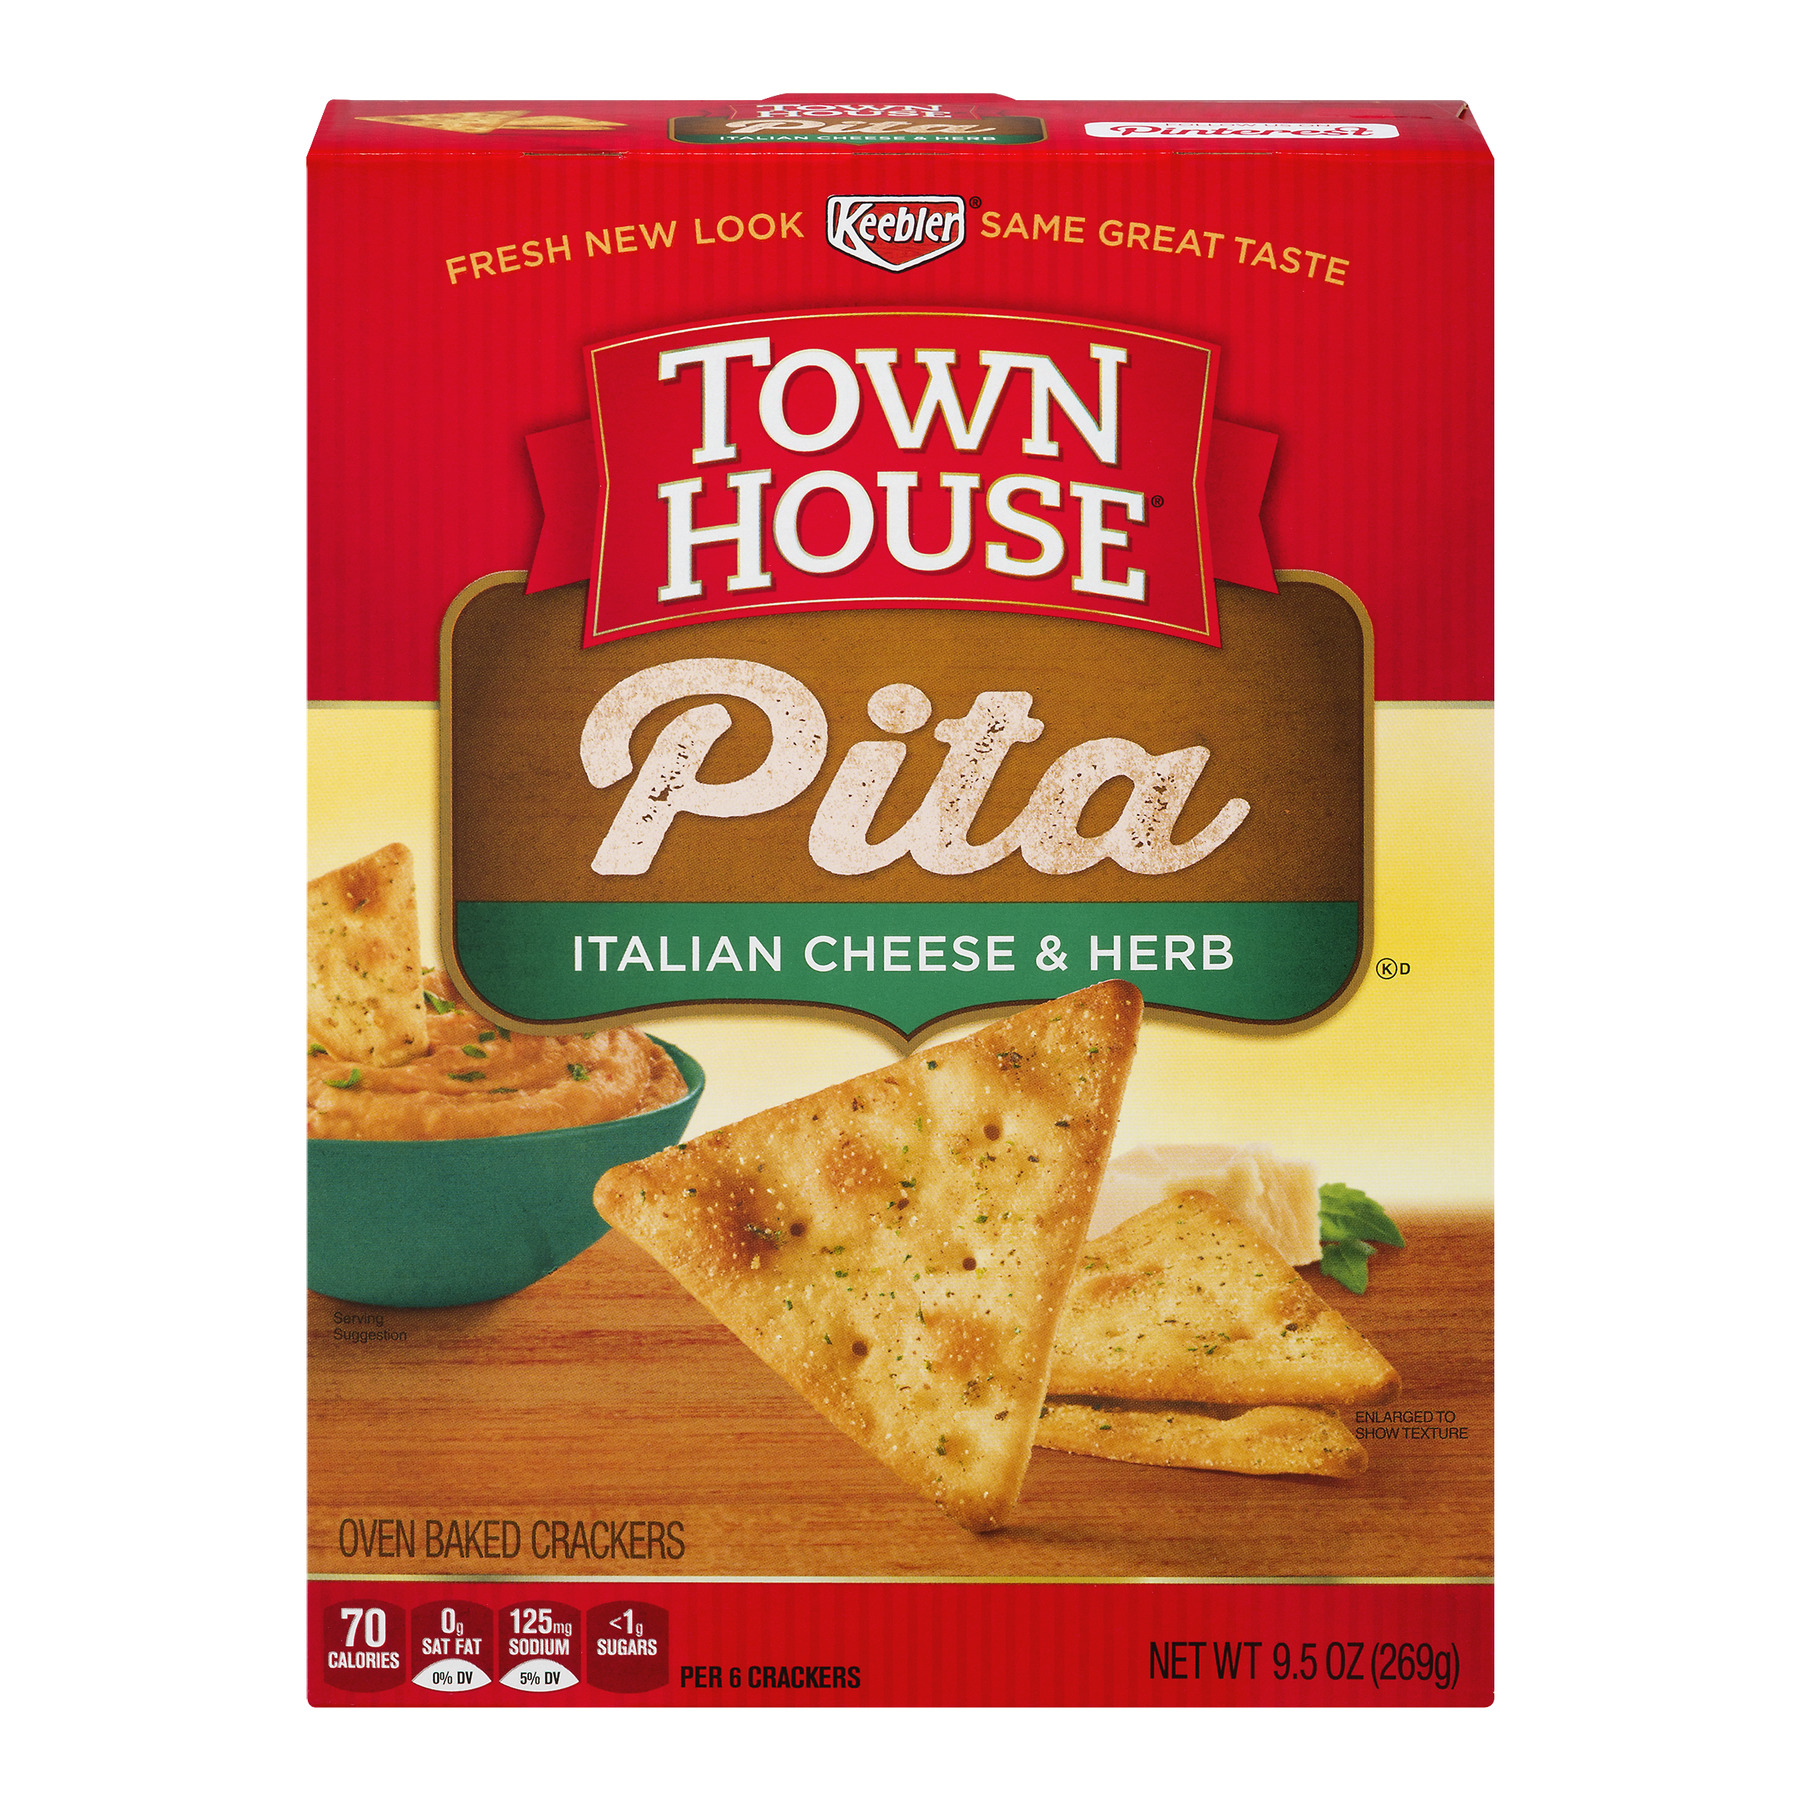 Keebler Town House Oven Baked Crackers Pita Italian Cheese & Herb, 9.5 OZ